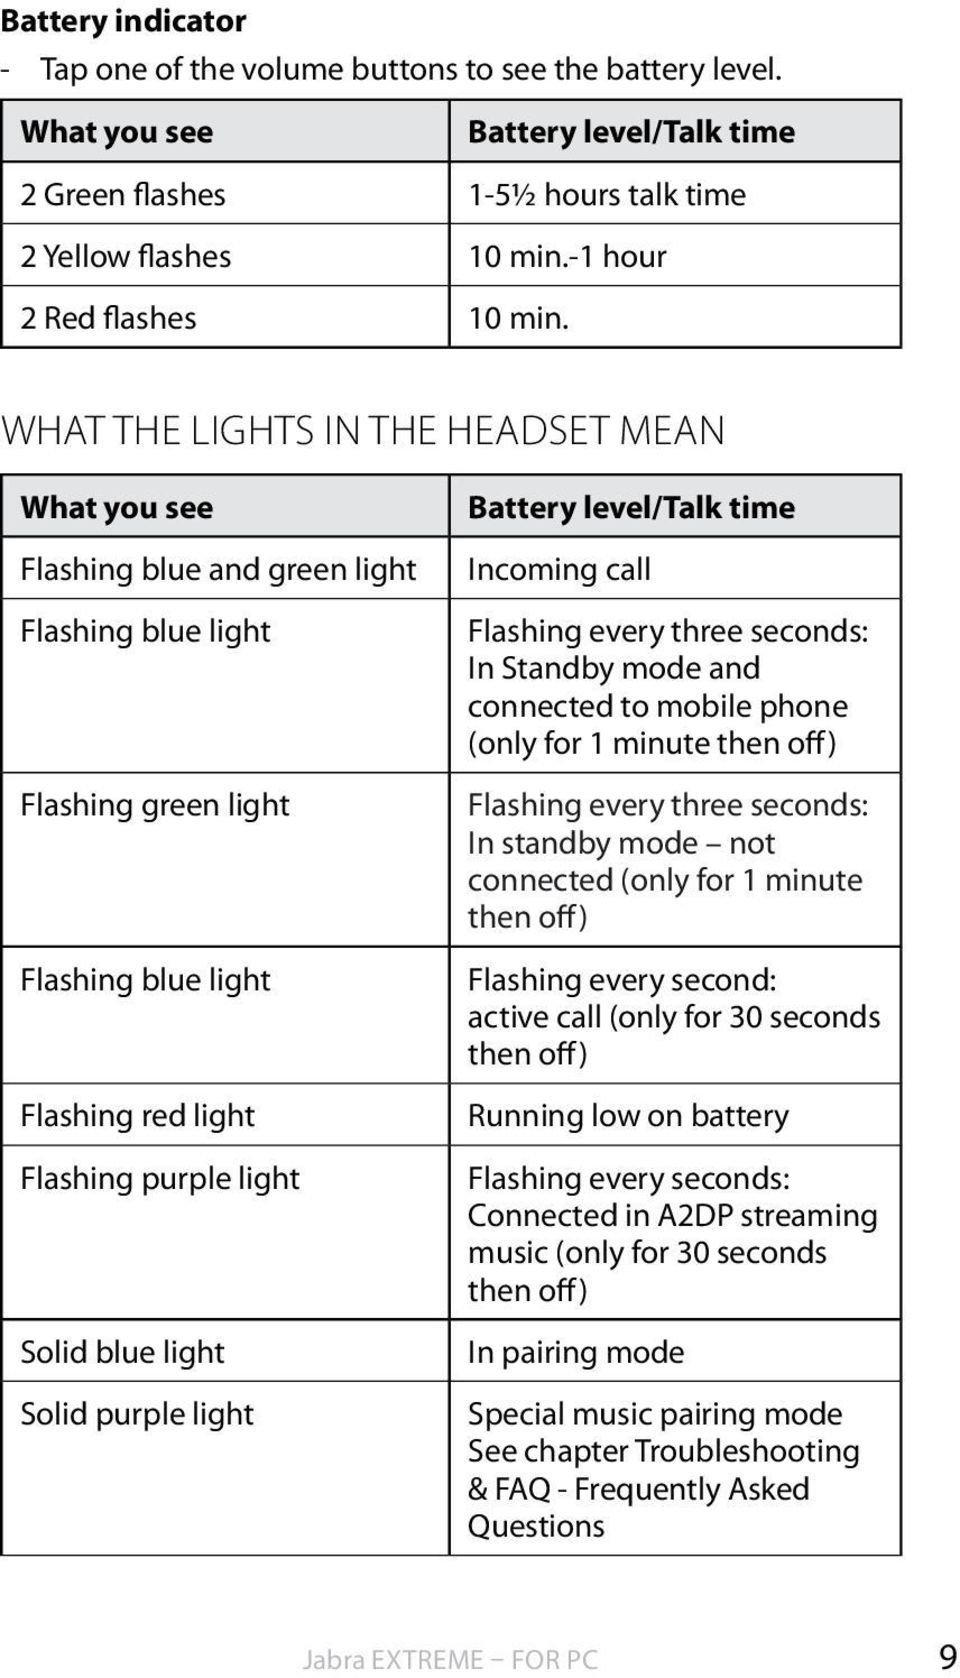 What the lights IN THE HEADSET mean What you see Flashing blue and green light Flashing blue light Flashing green light Flashing blue light Flashing red light Flashing purple light Solid blue light